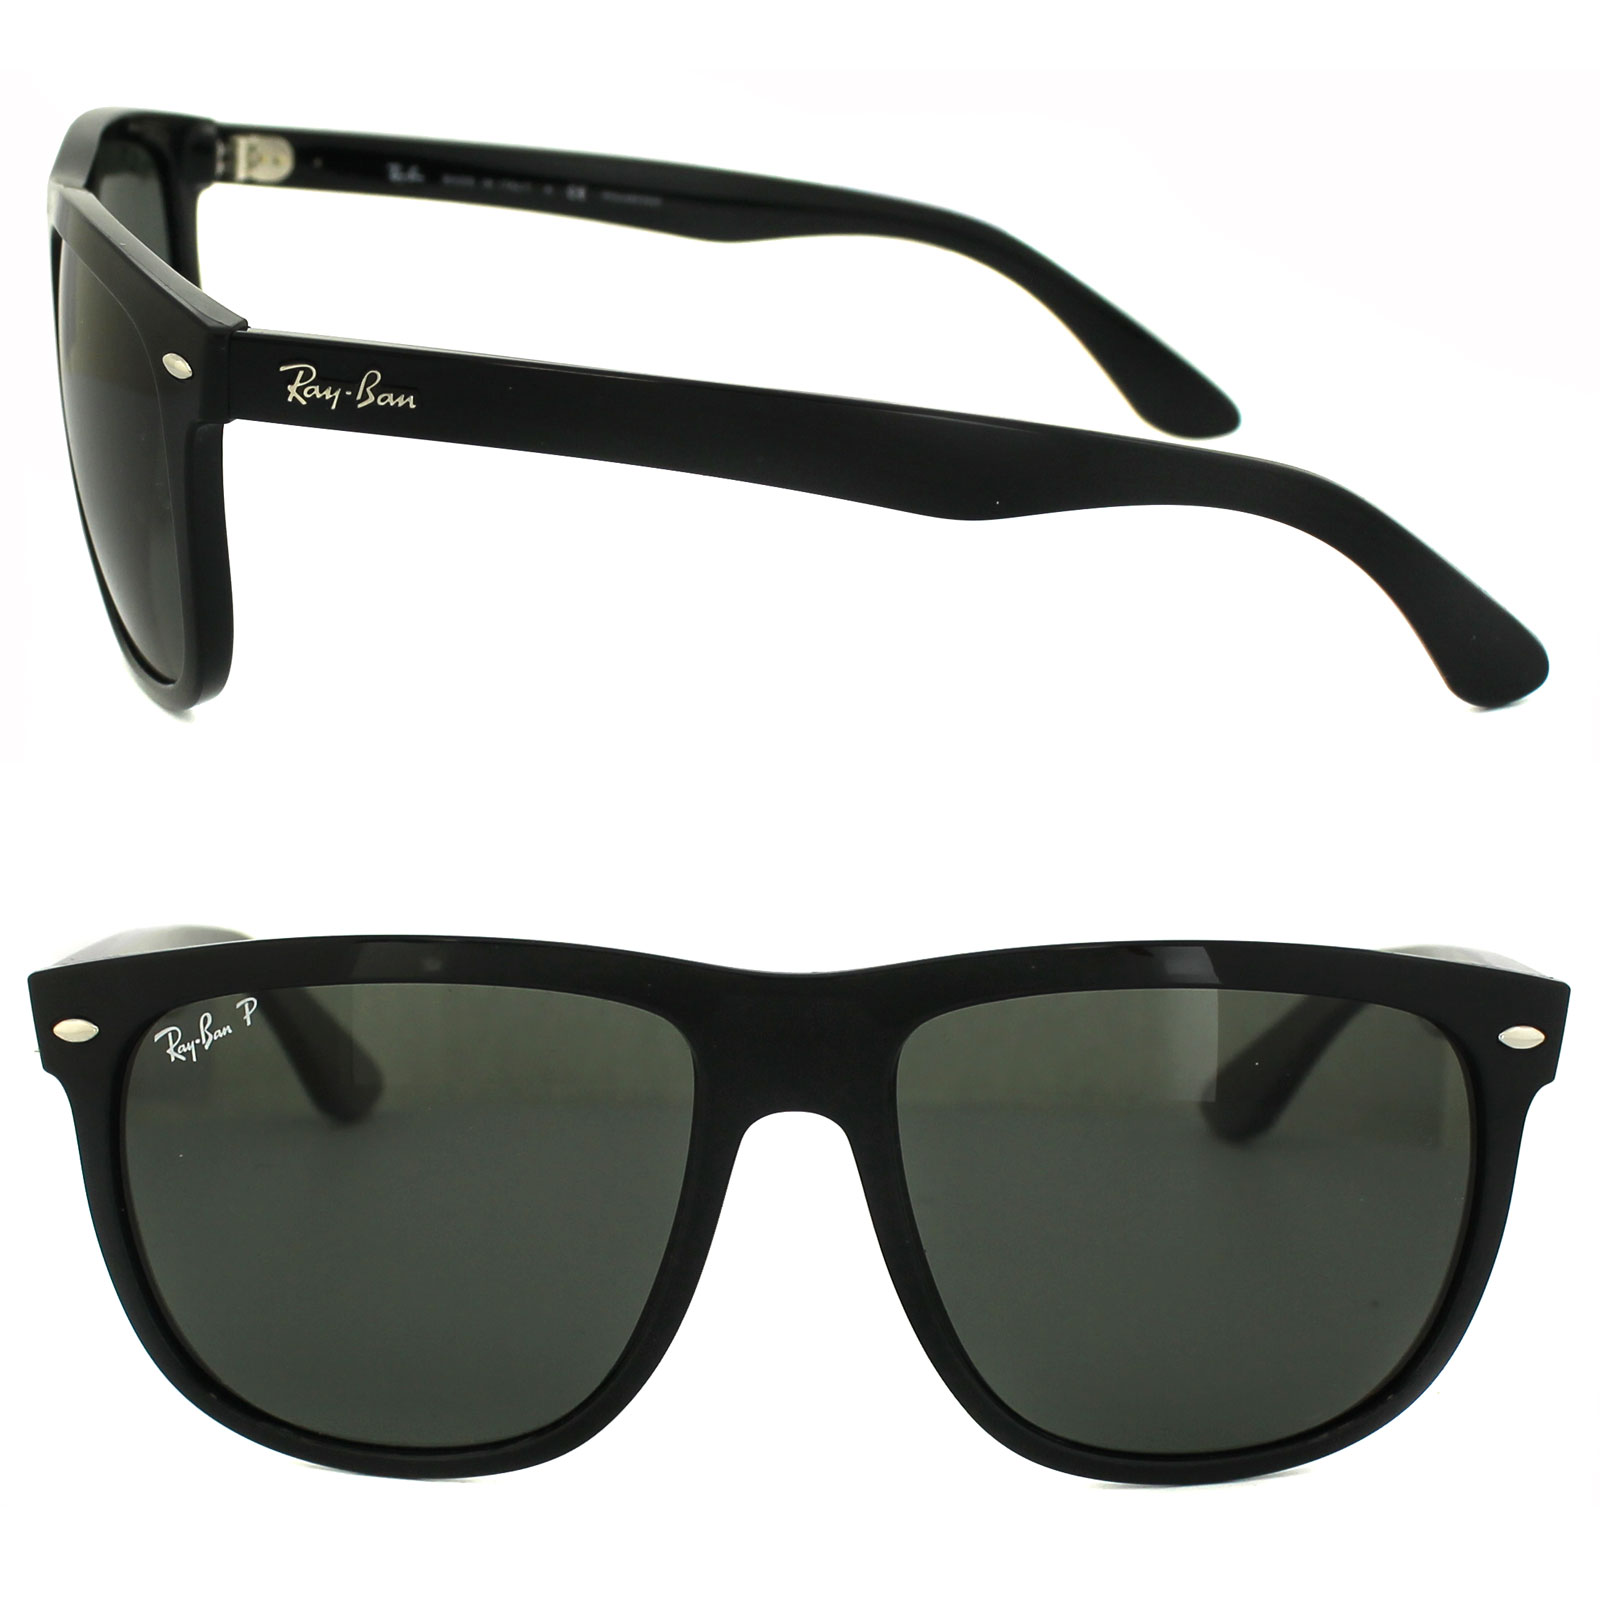 Cheap Ray Ban 4147 Sunglasses Discounted Sunglasses